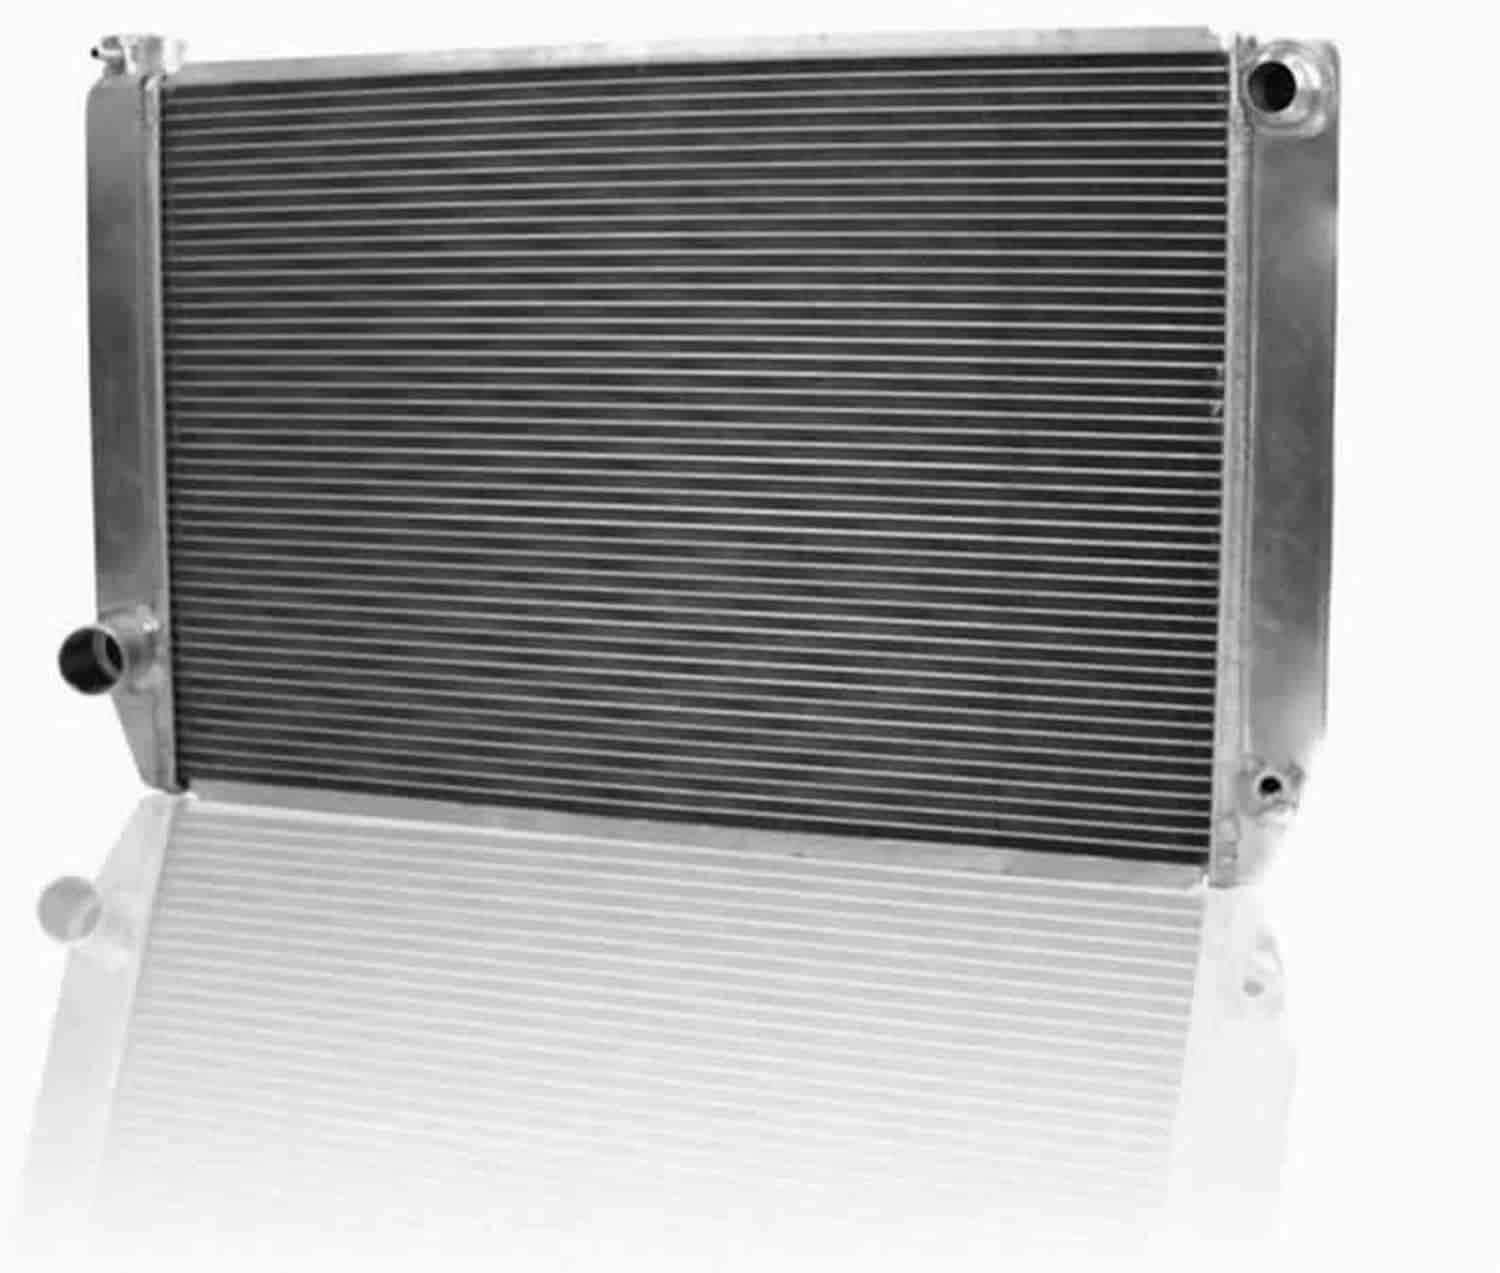 Griffin Radiators 1-26272-F